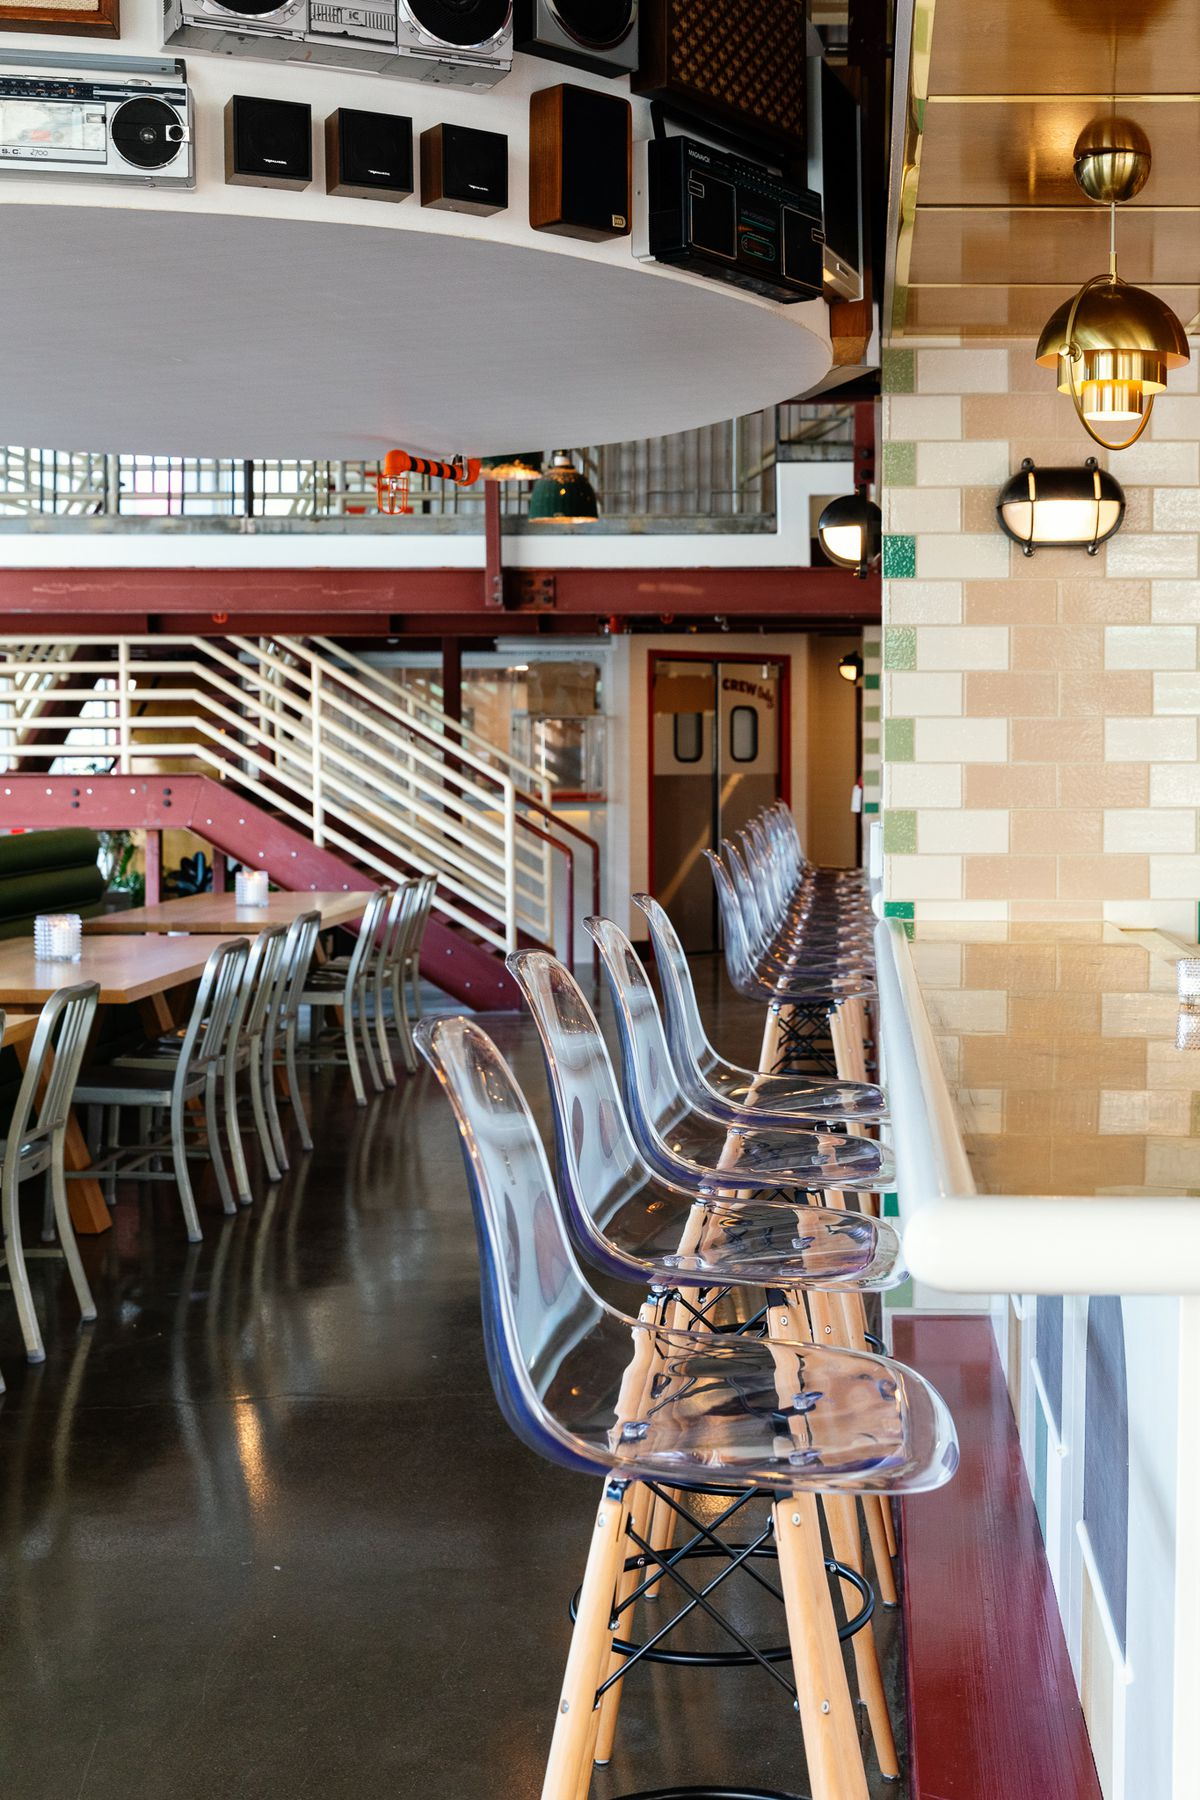 Chairs at a bar and table seating. Radio speakers hang over the dining room